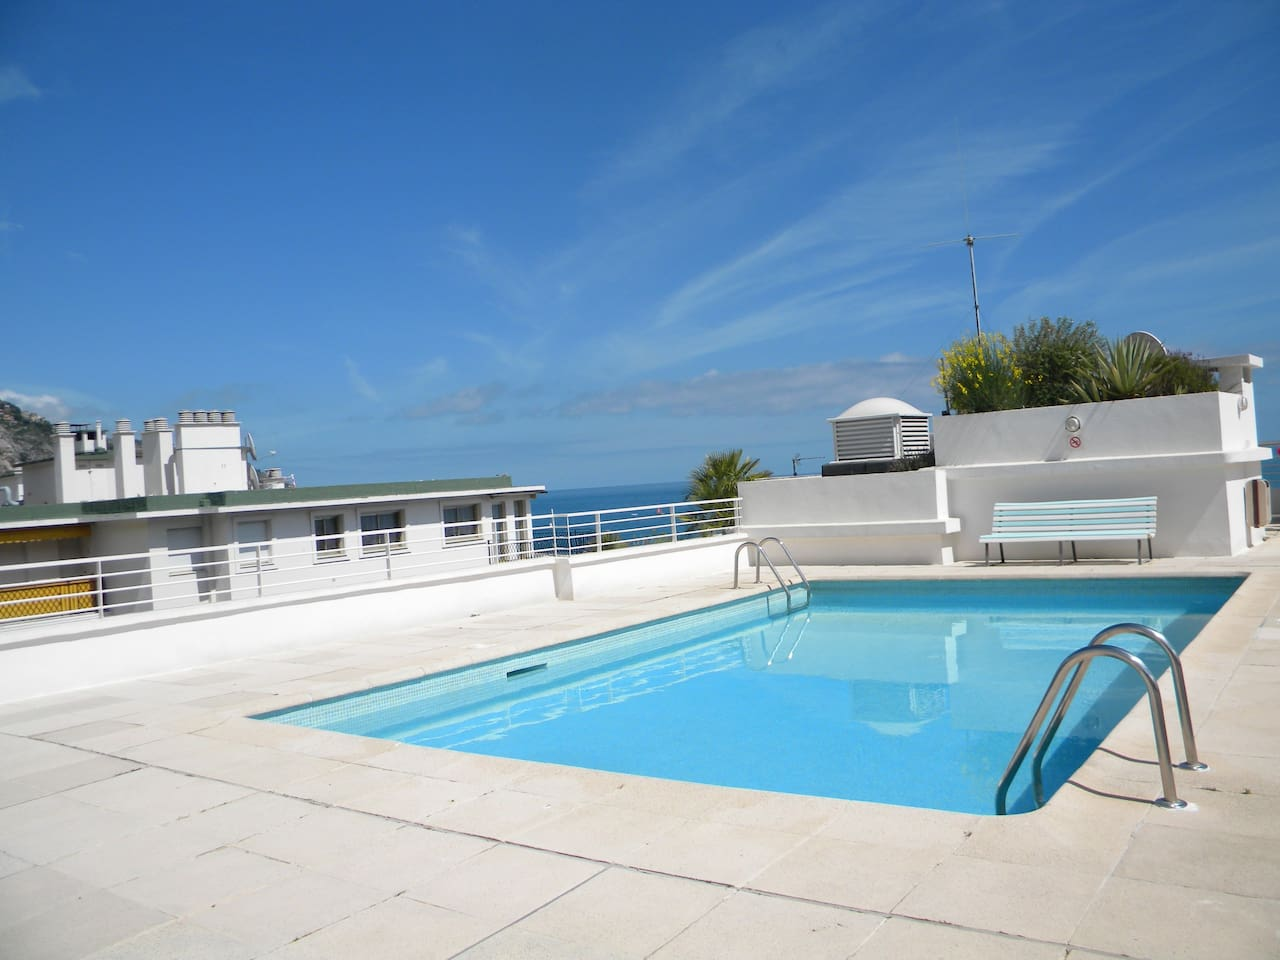 pool on the roof terrace with an outstanding vieuw!